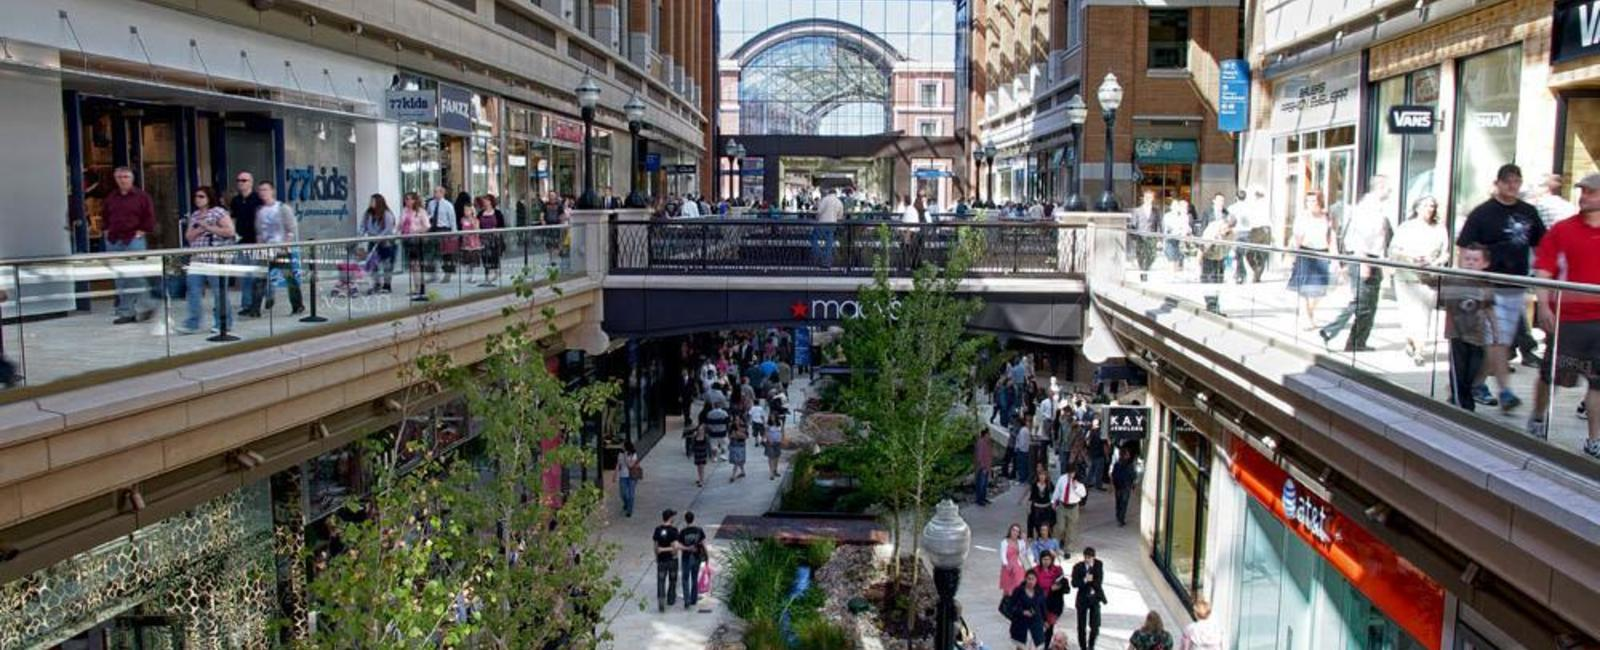 Discover Utah Beyond the Slopes: A Day at City Creek Center